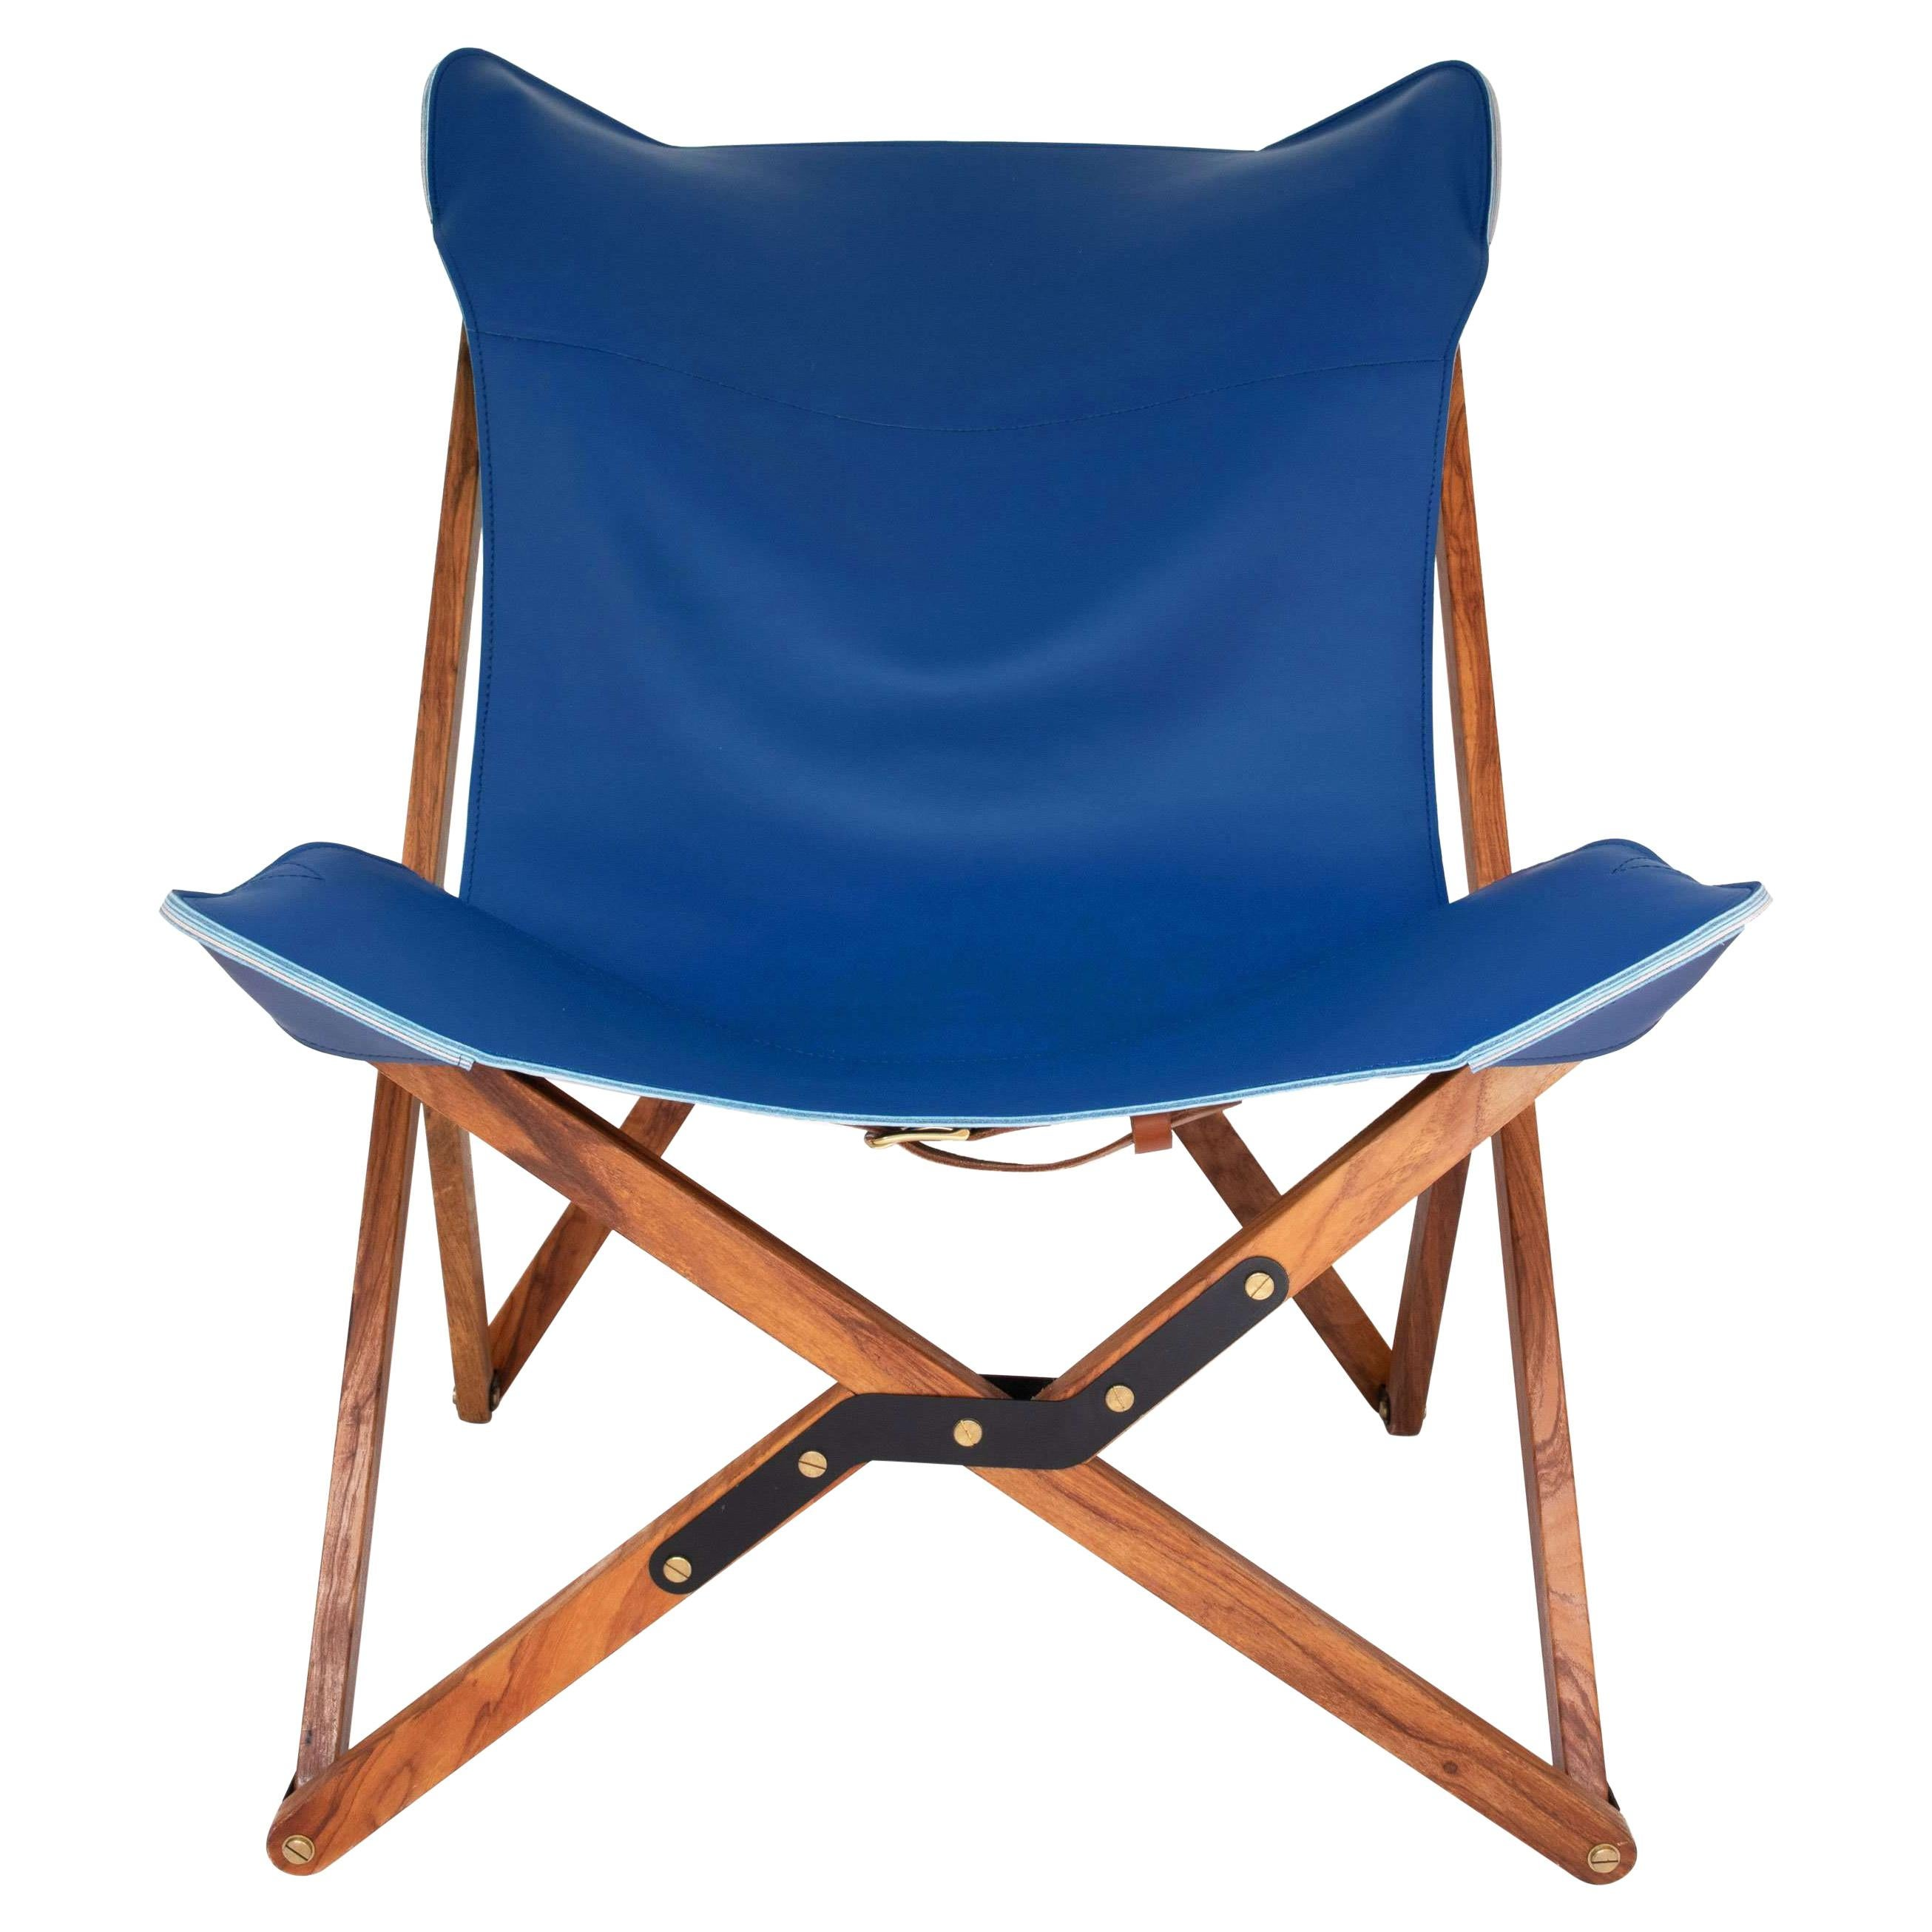 Humphrey Chair, Pecan Wood and Leather Folding Chair 'Blue'